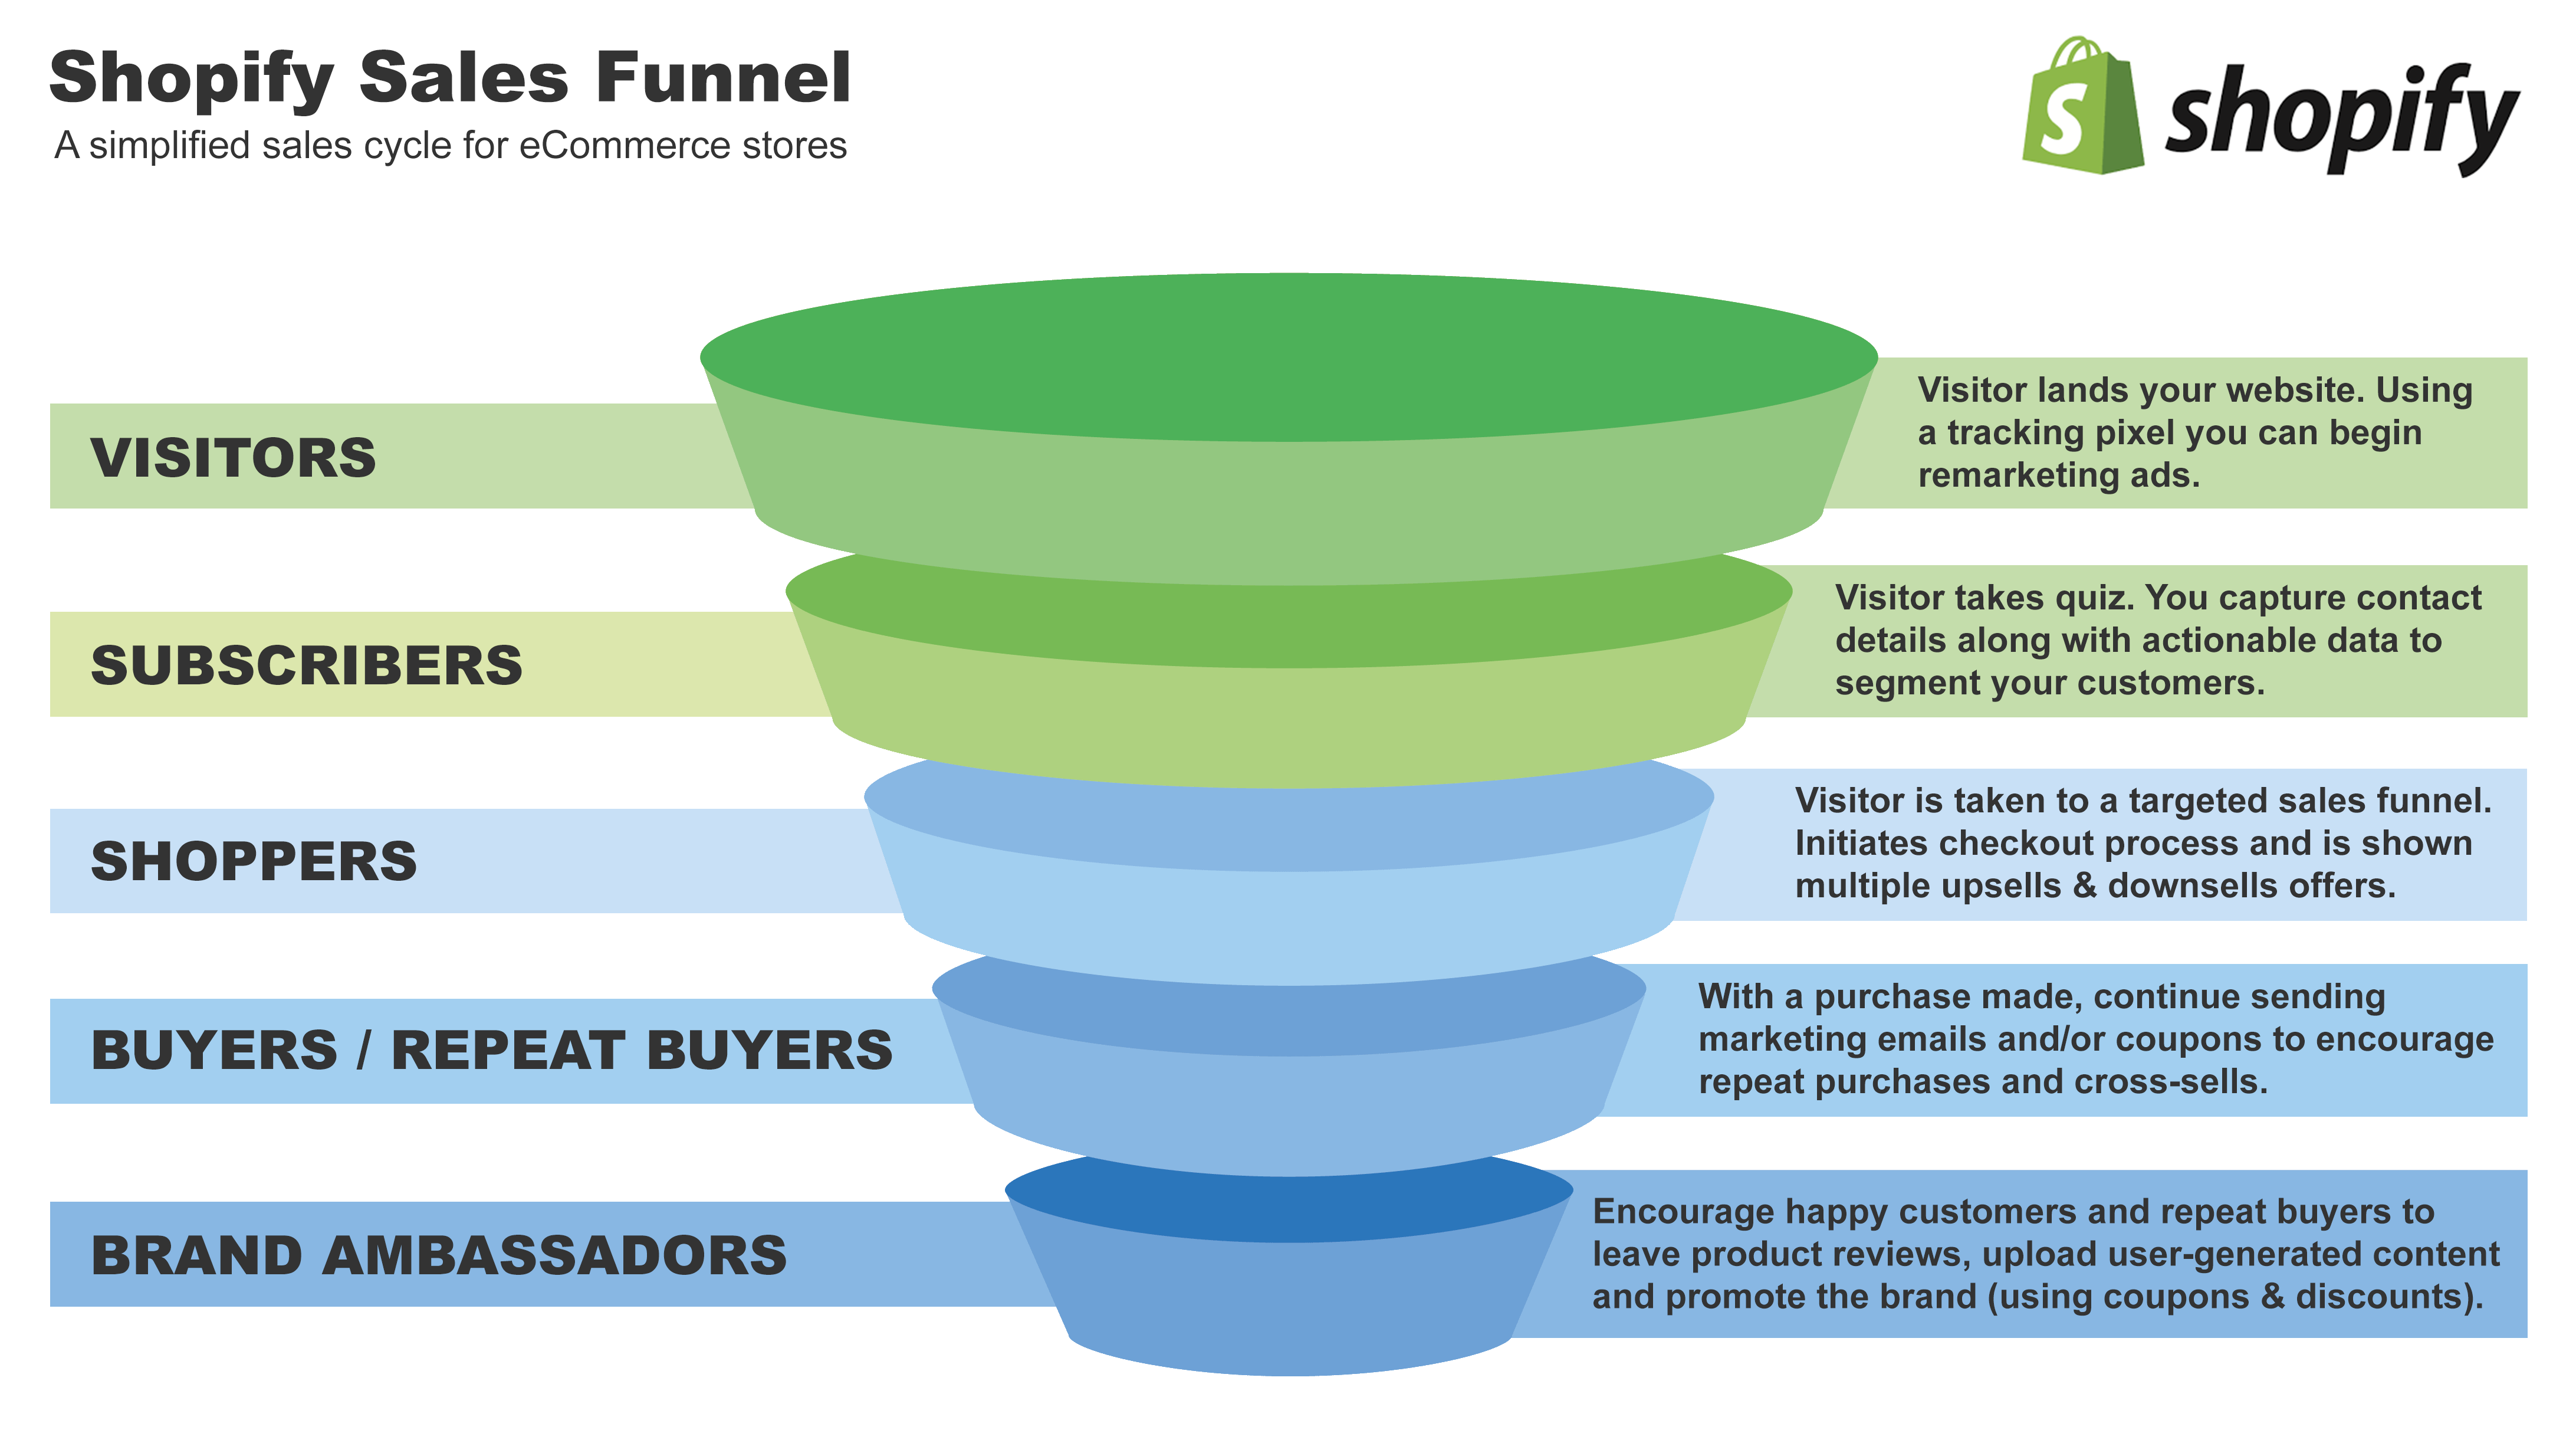 Shopify Sales Funnel (Simplified)